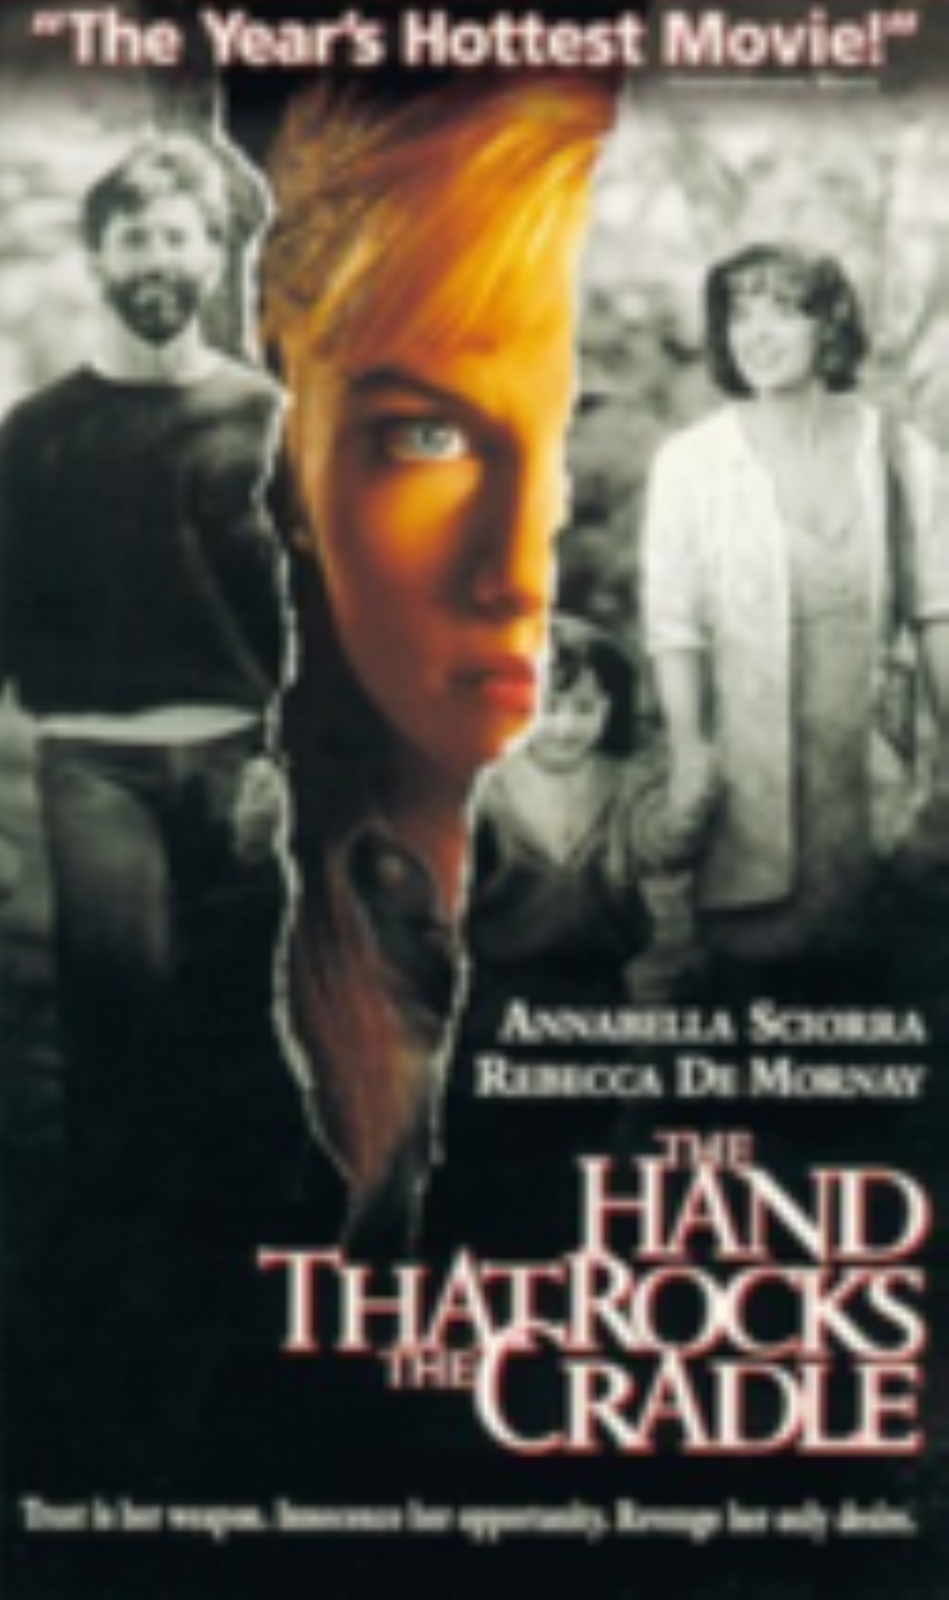 Hand That Rocks Cradle Vhs